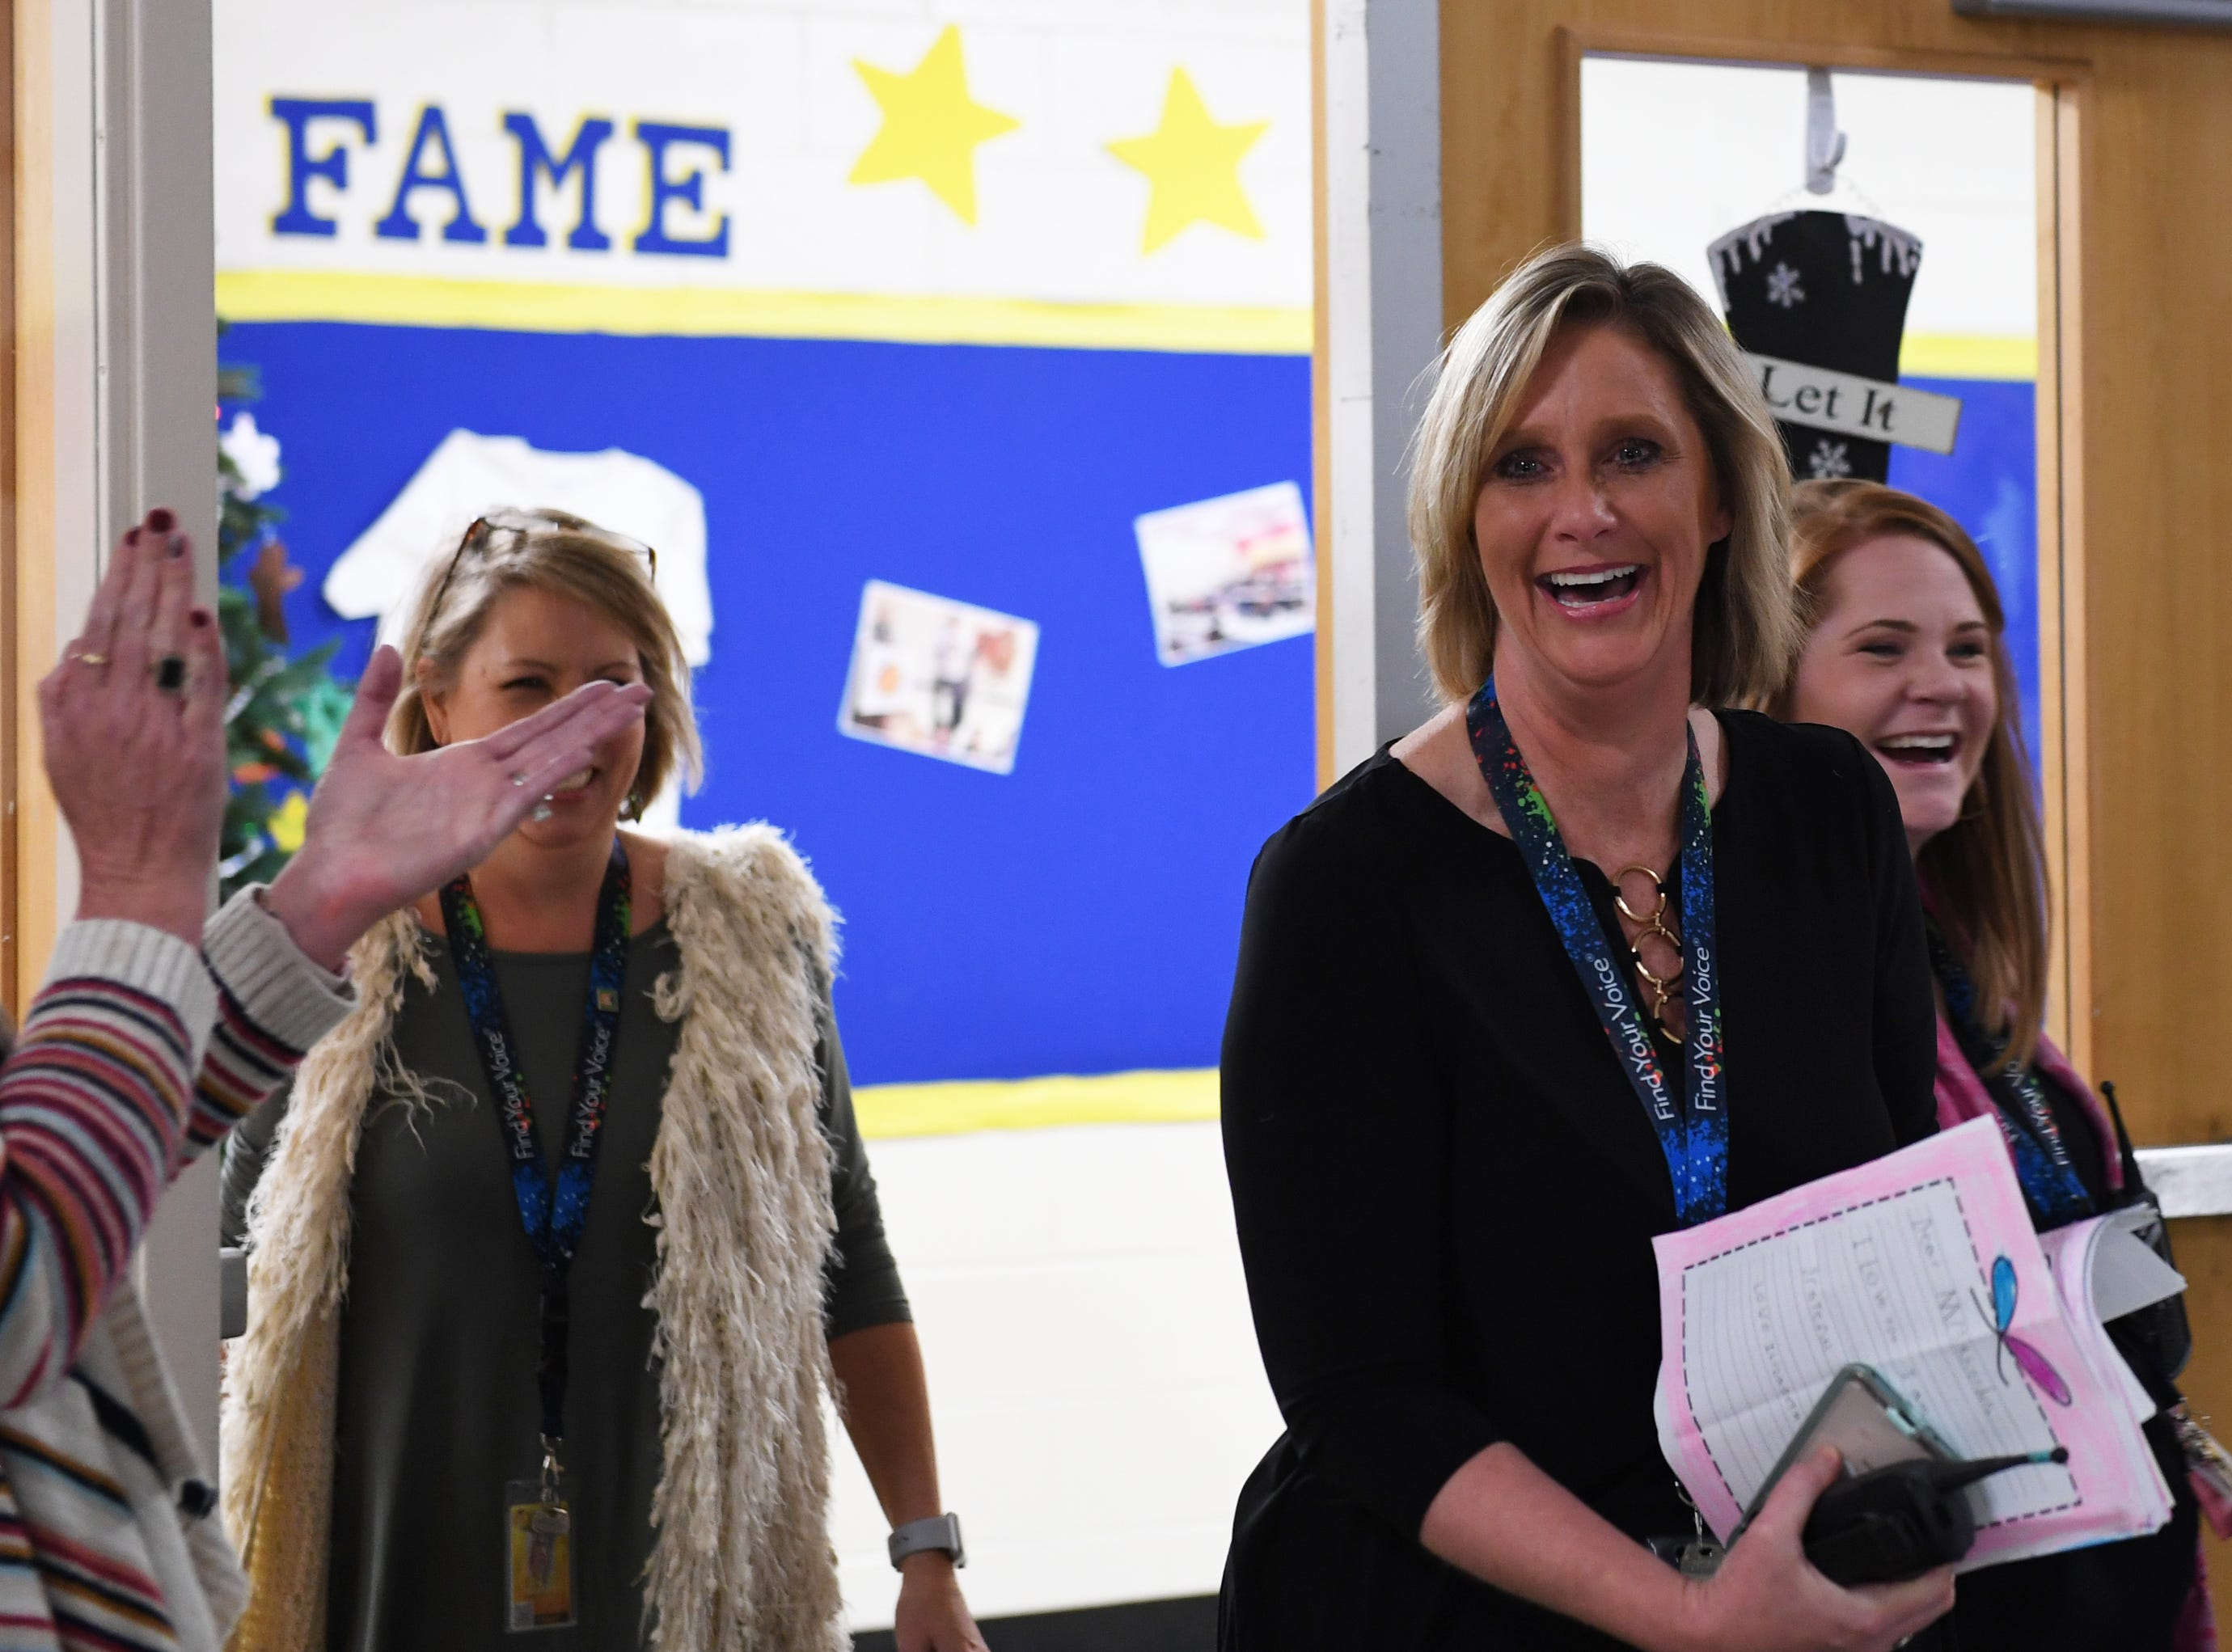 Principal Rhonda Rhodes walks into the cafeteria at Taylors Elementary School to a surprise gathering Friday, Nov. 30, 2018, where she was awarded as the 2019 SC Elementary Principal of the Year.